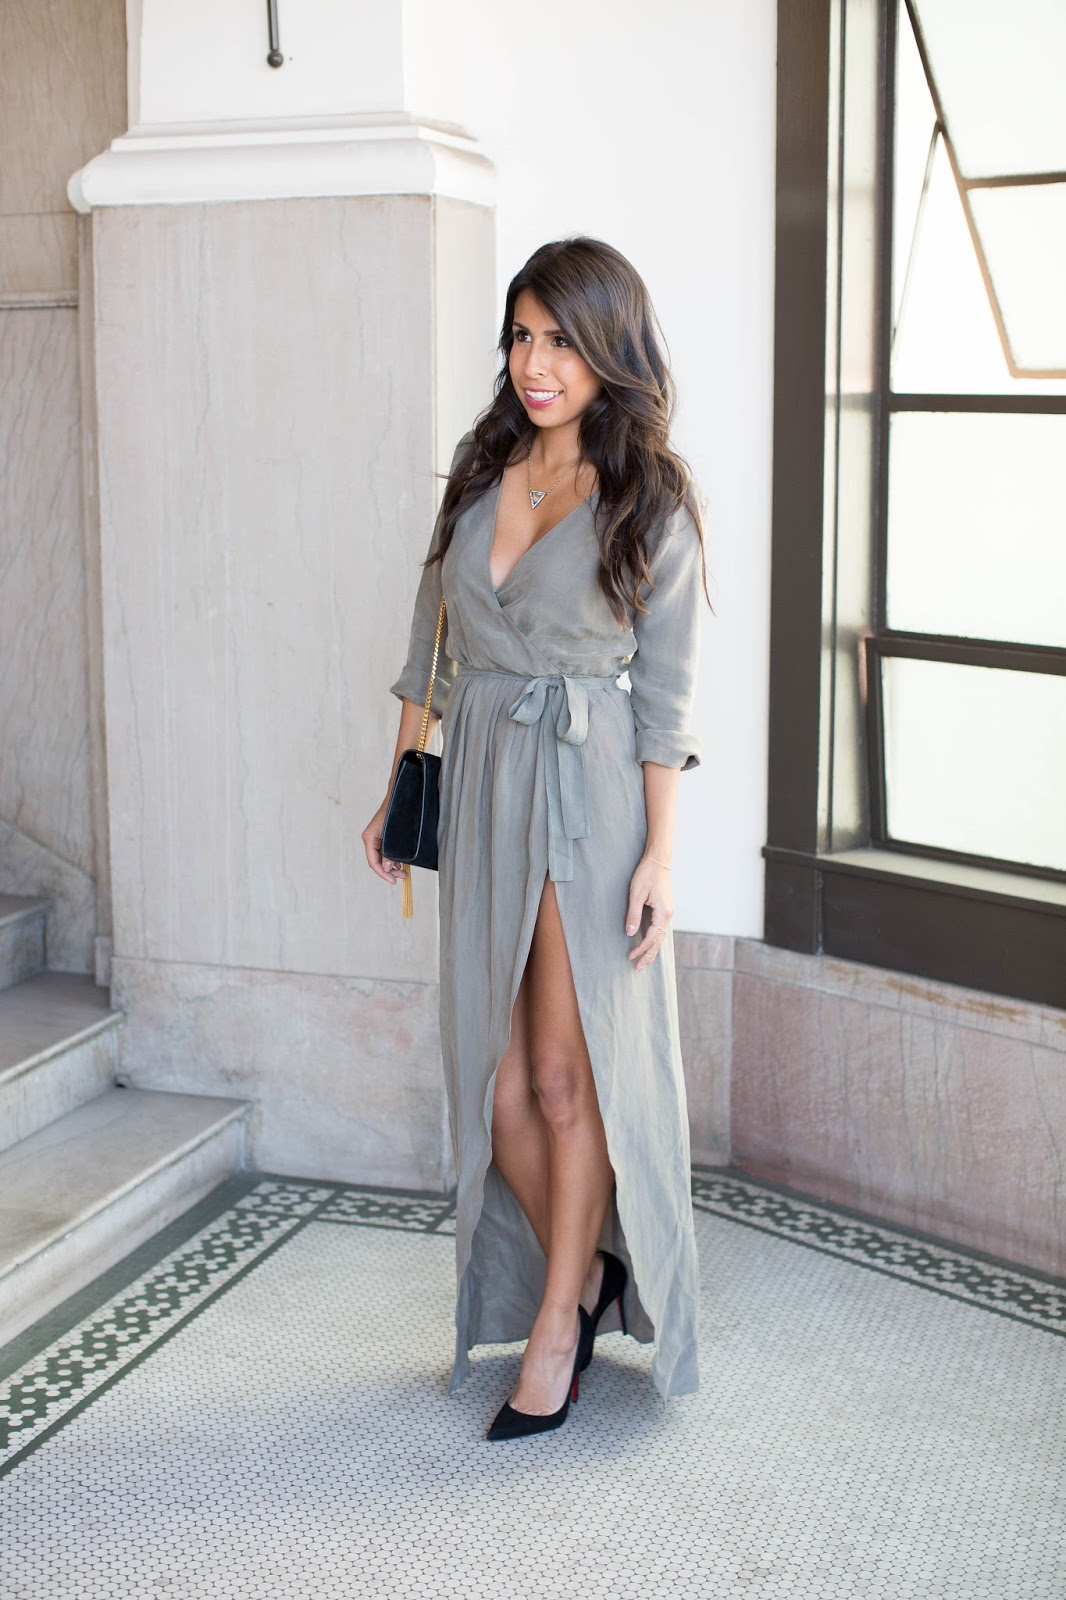 again dress, christian louboutin so kate heels, thigh high slit dress, holiday outfit